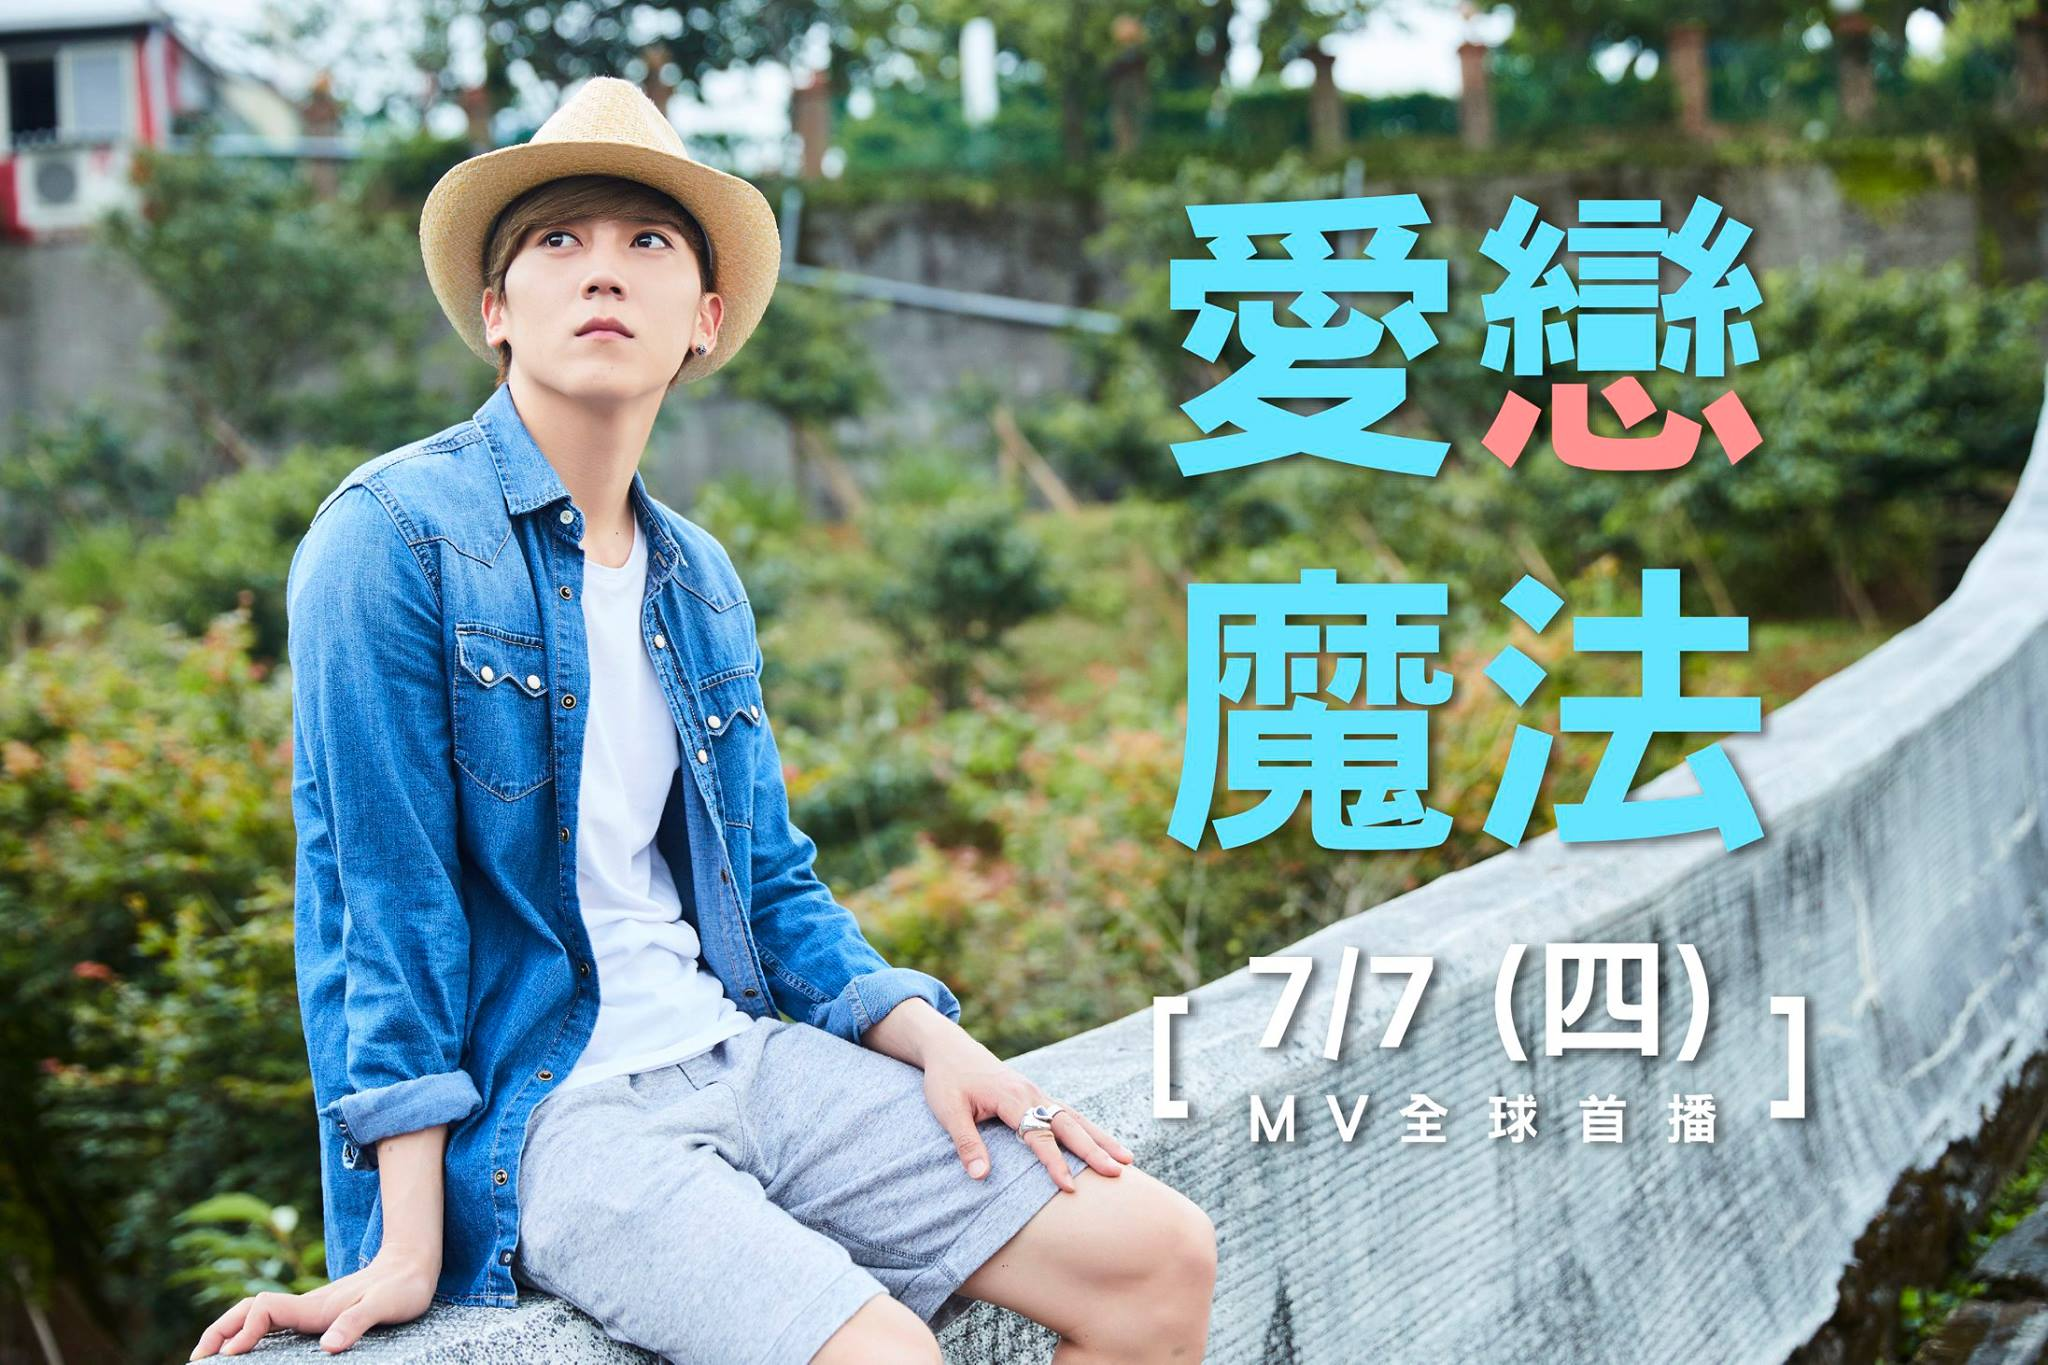 Bii releases Love Magic music video on his birthday